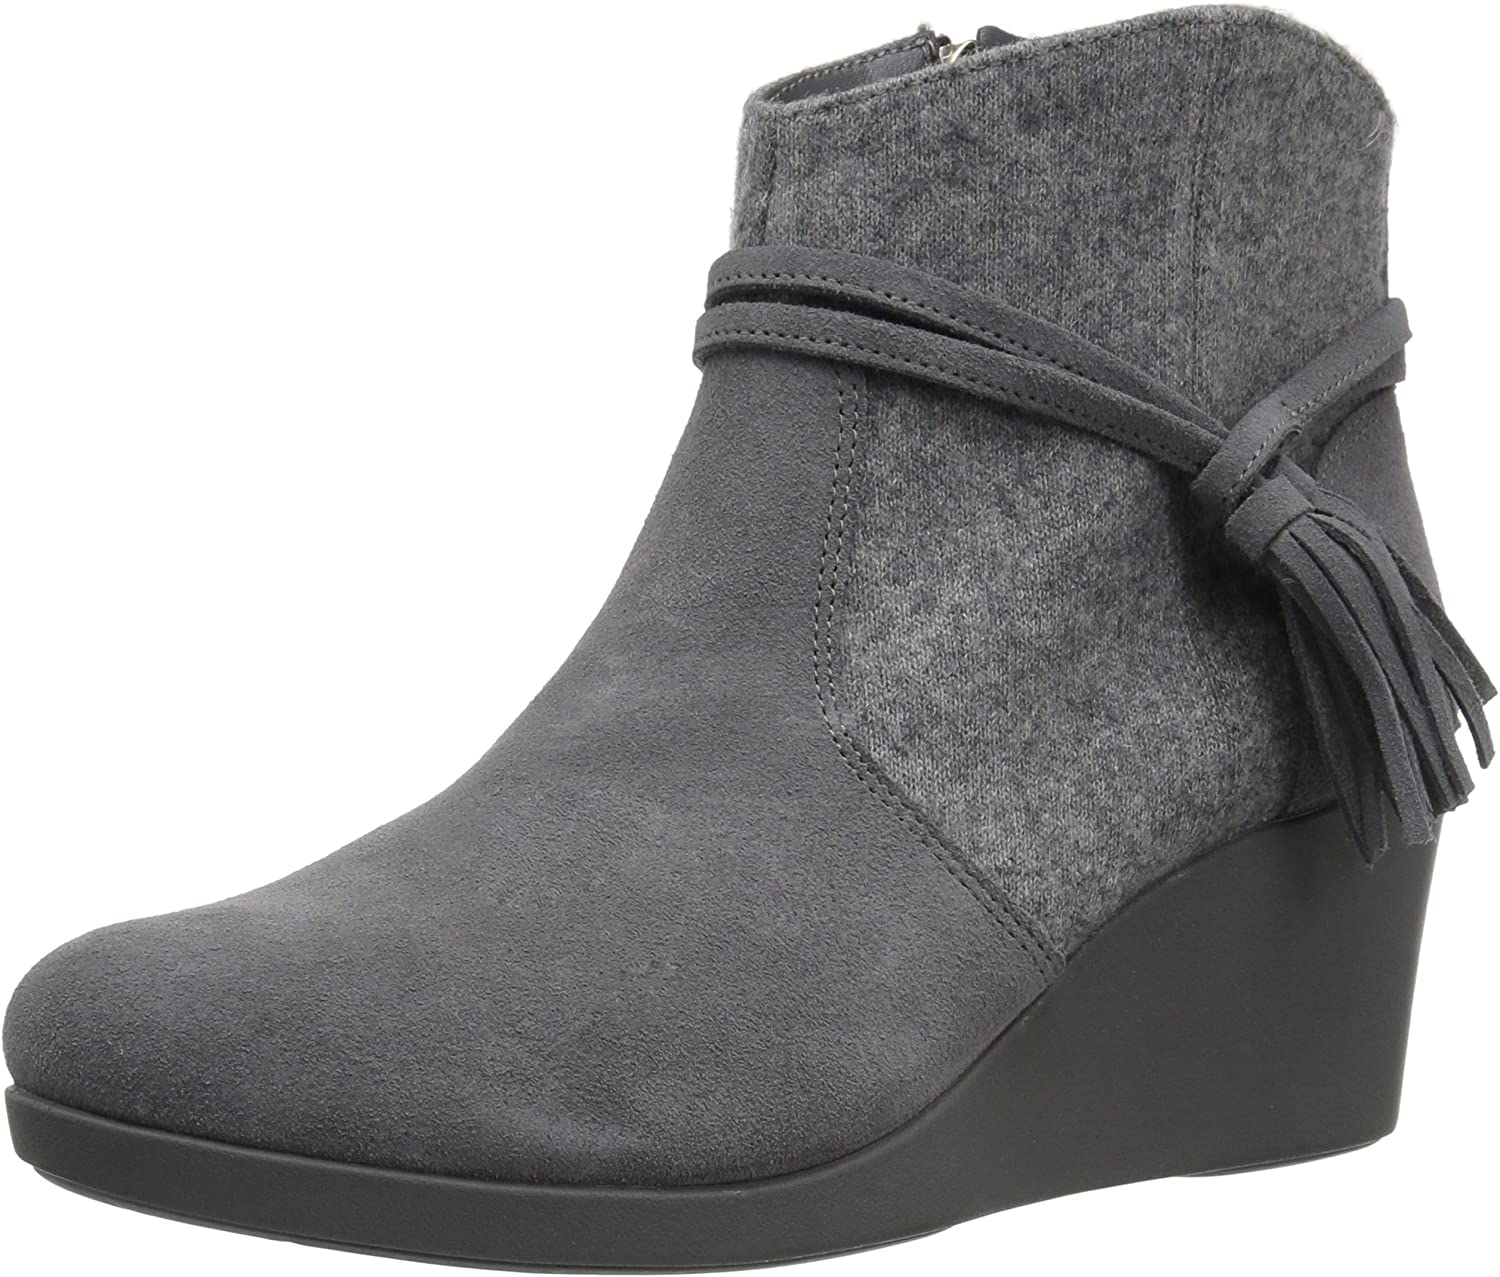 Crocs Womens Leigh Suede Mix Wedge Bootie Ankle Bootie